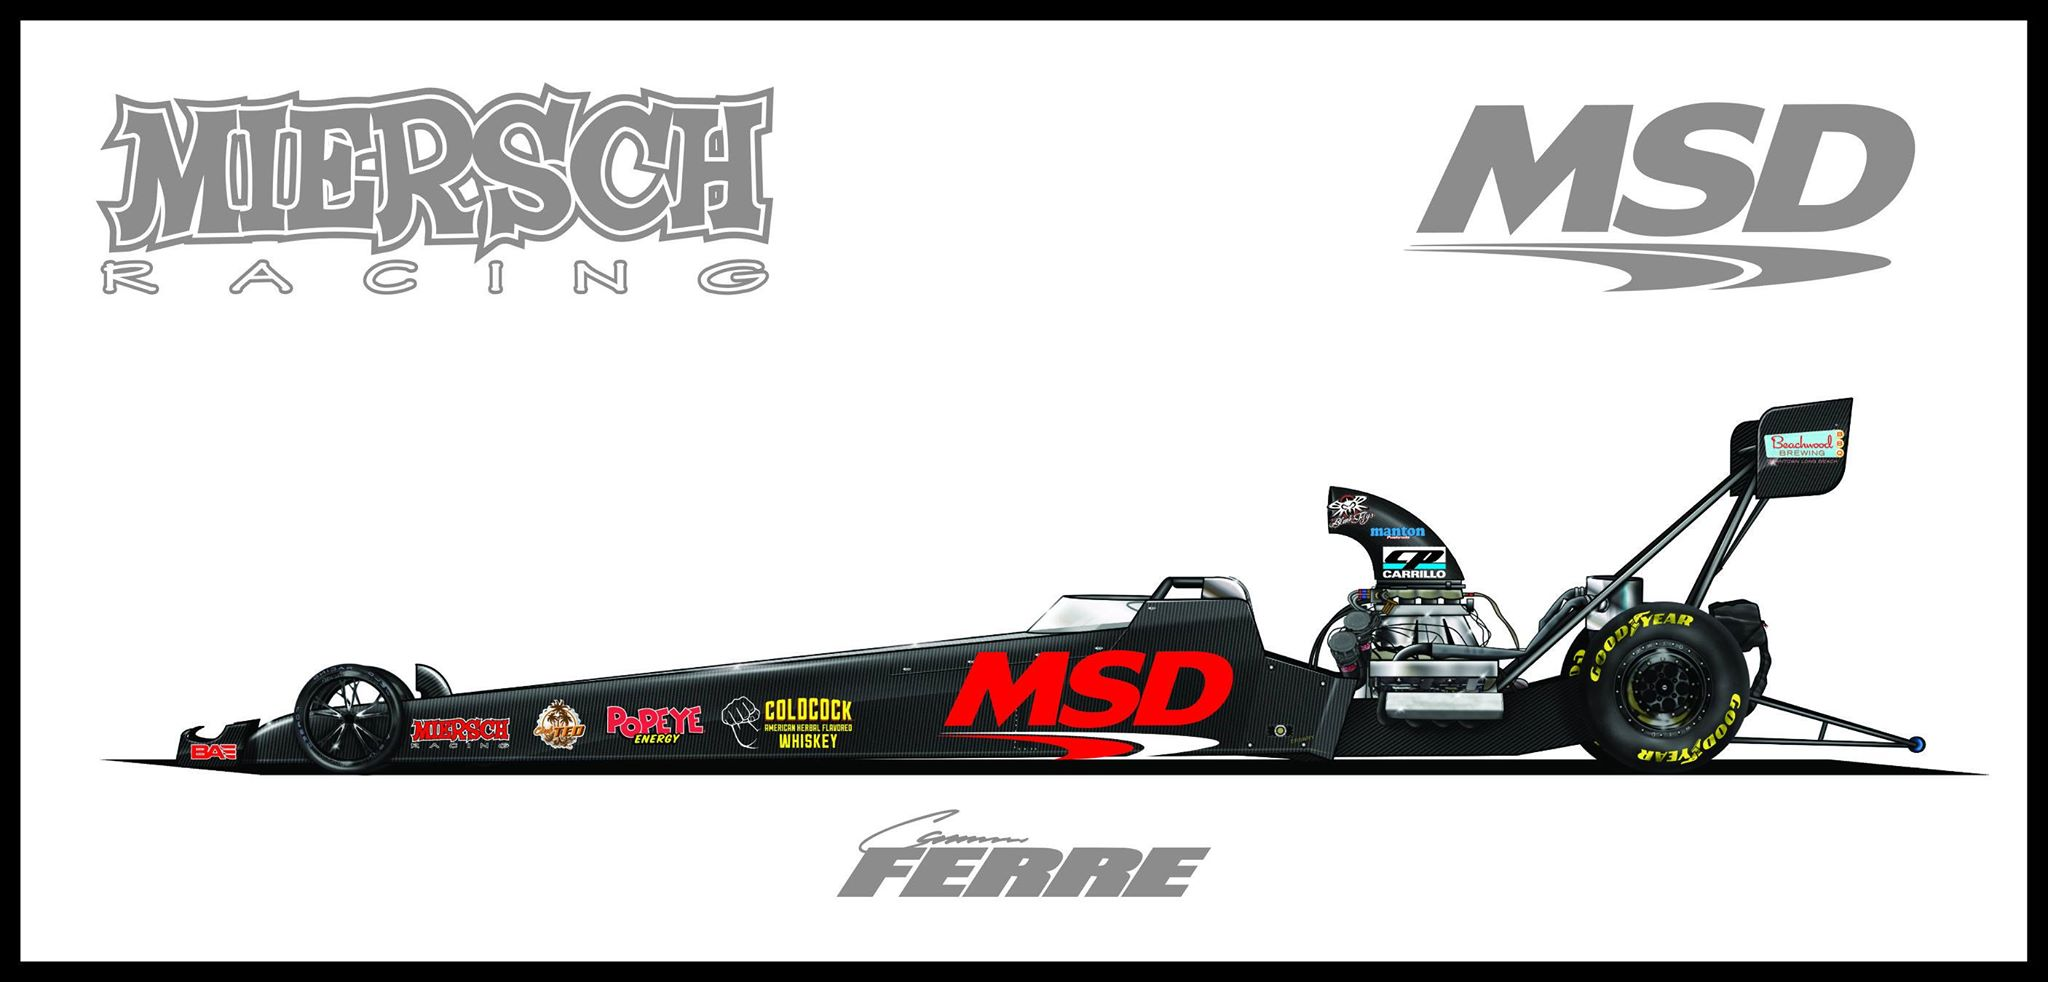 Cameron Ferre To Fly Msd Performance Banner At Nhra Spring